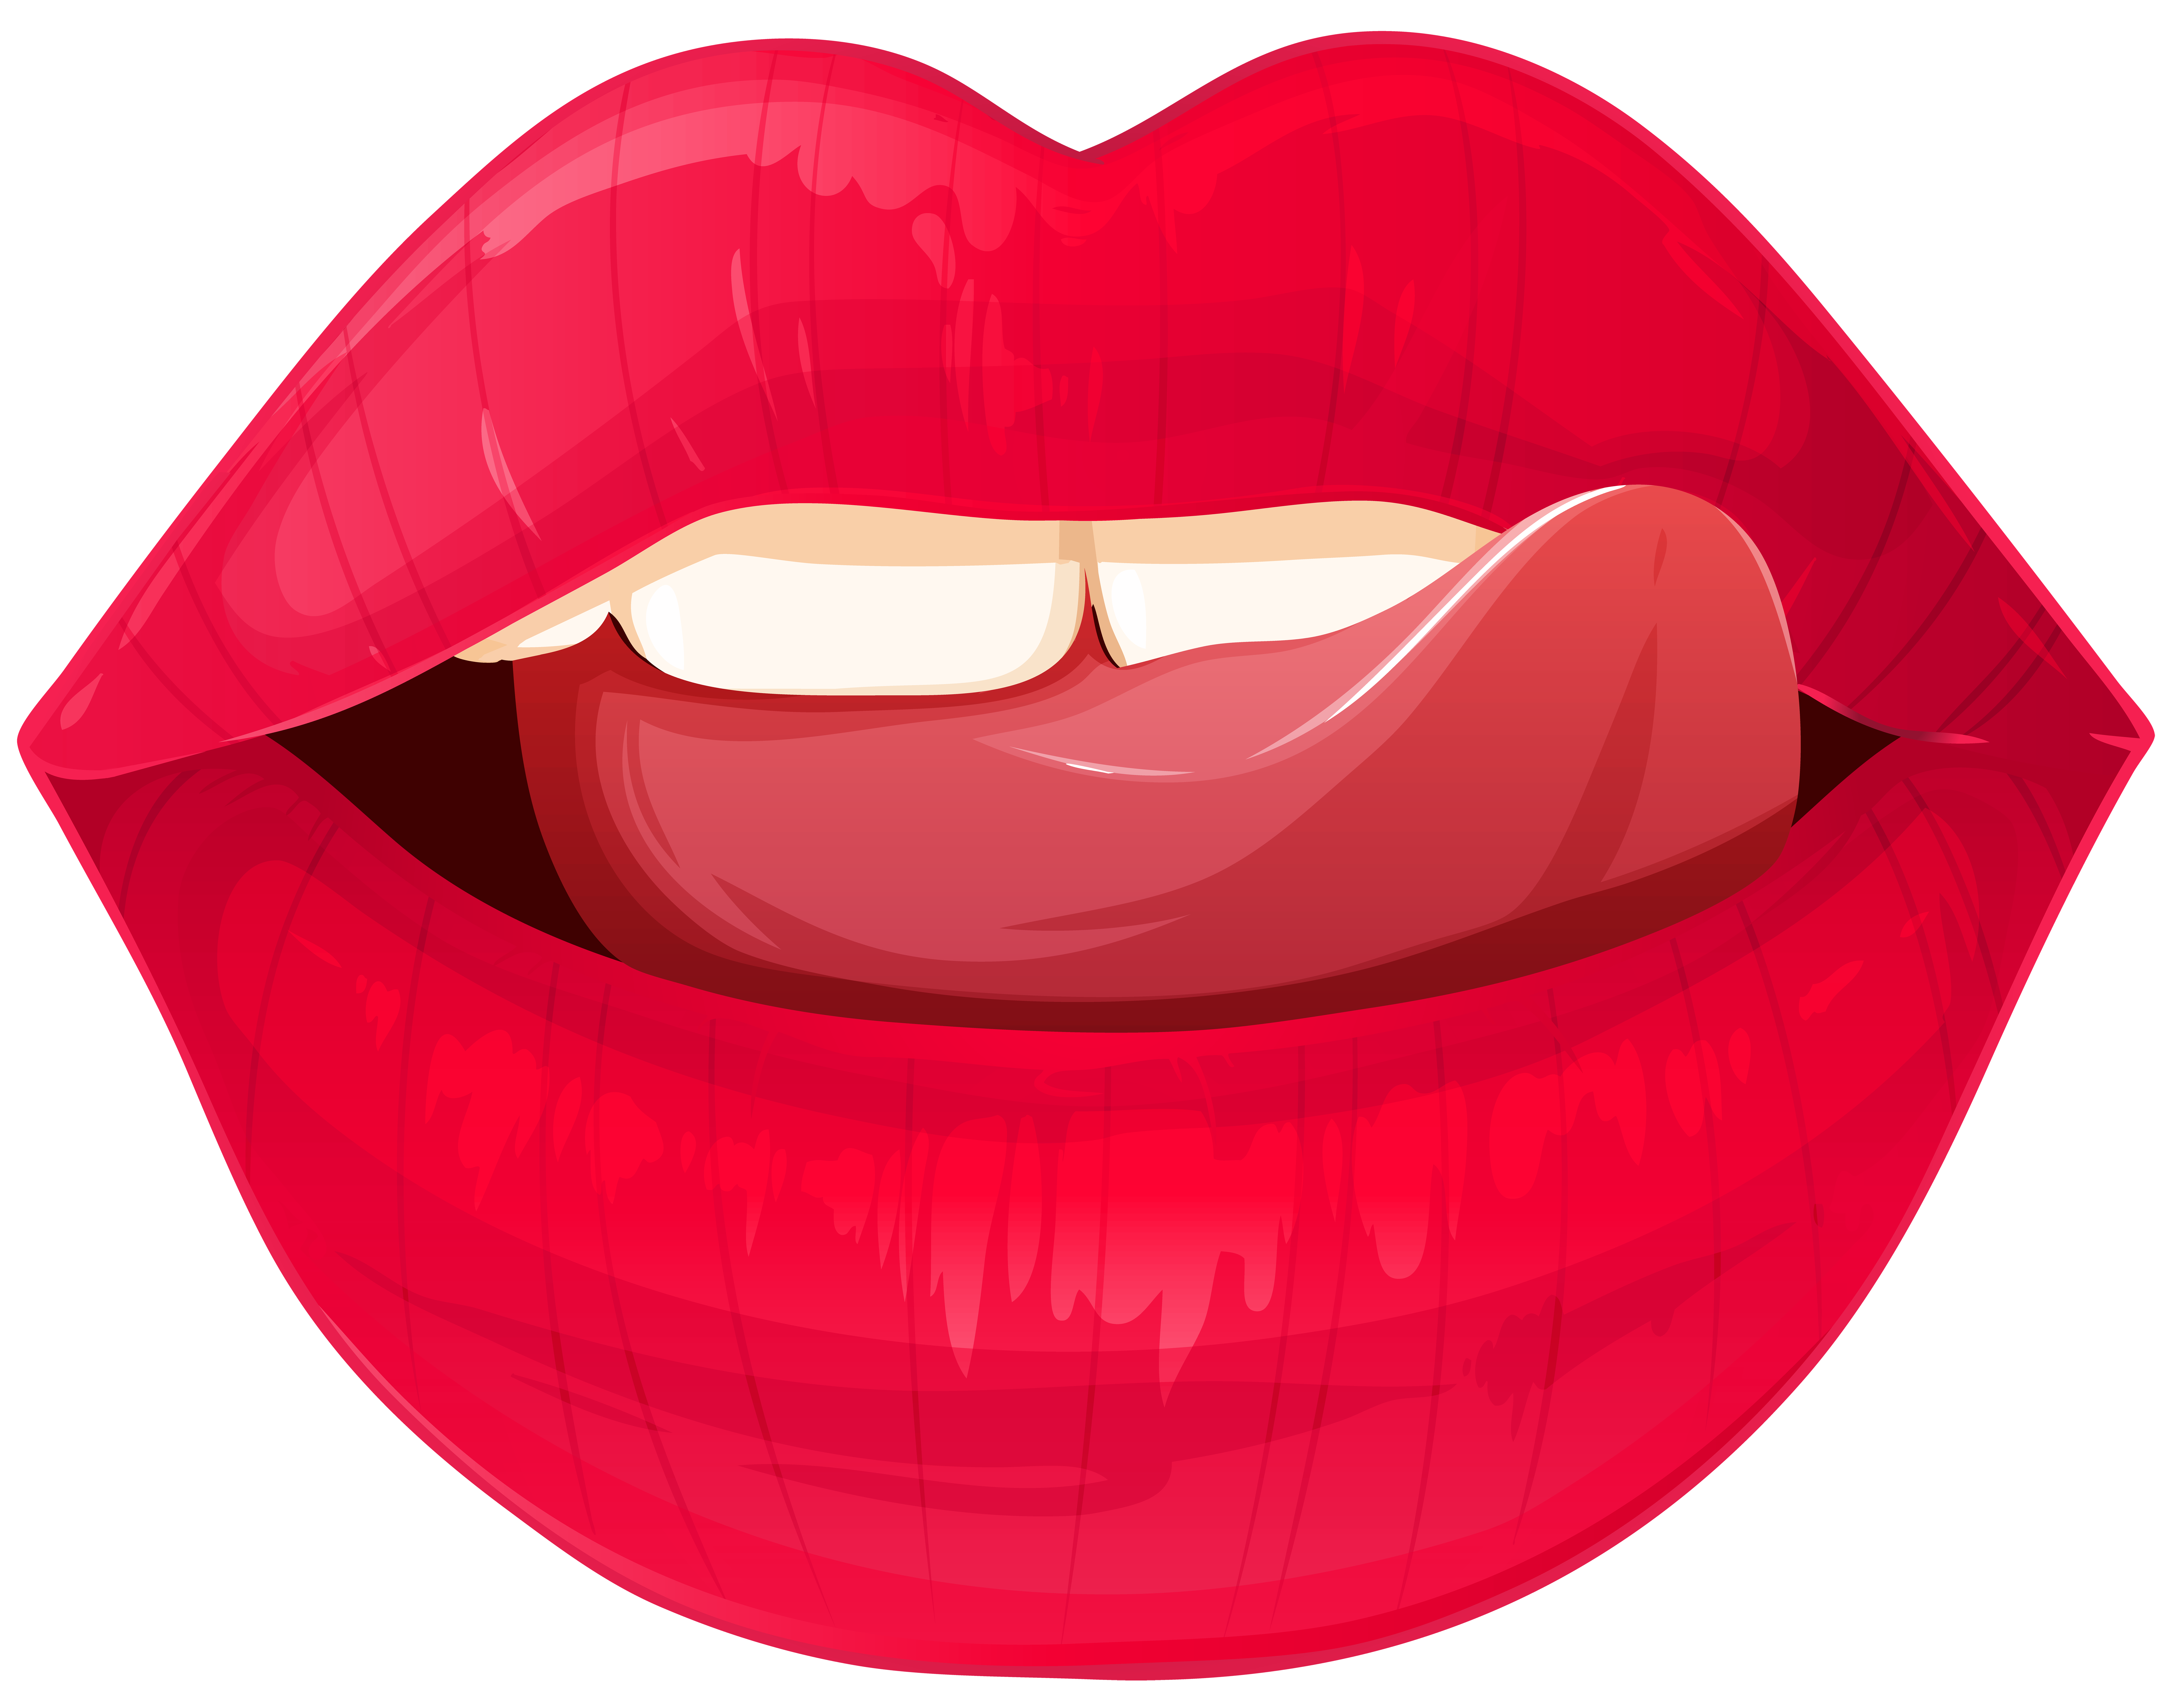 Smile Lips Clipart | Free download on ClipArtMag